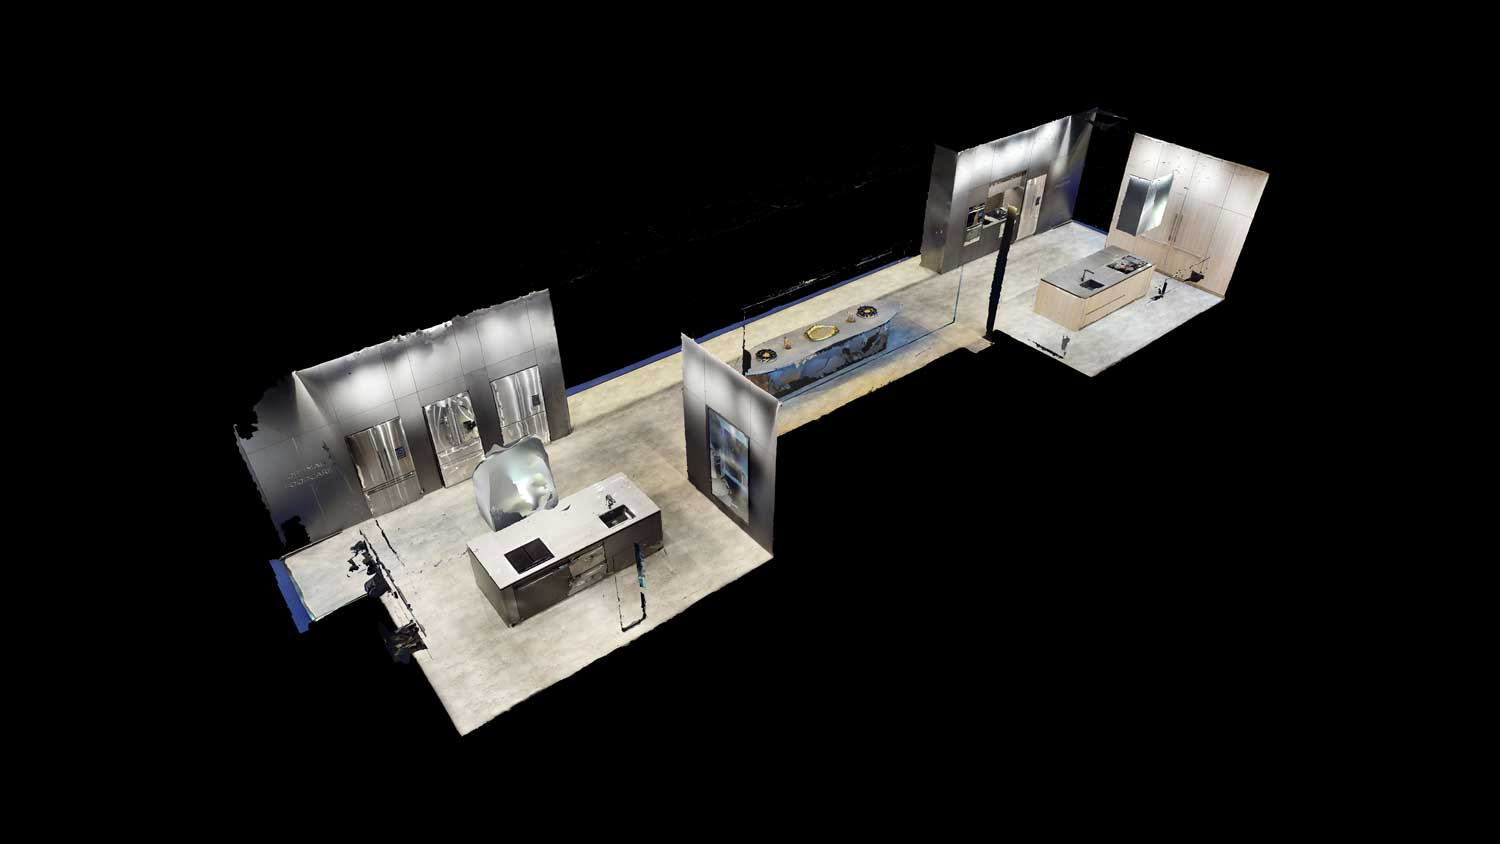 Fisher & Paykel doll house view of KBB exhibition